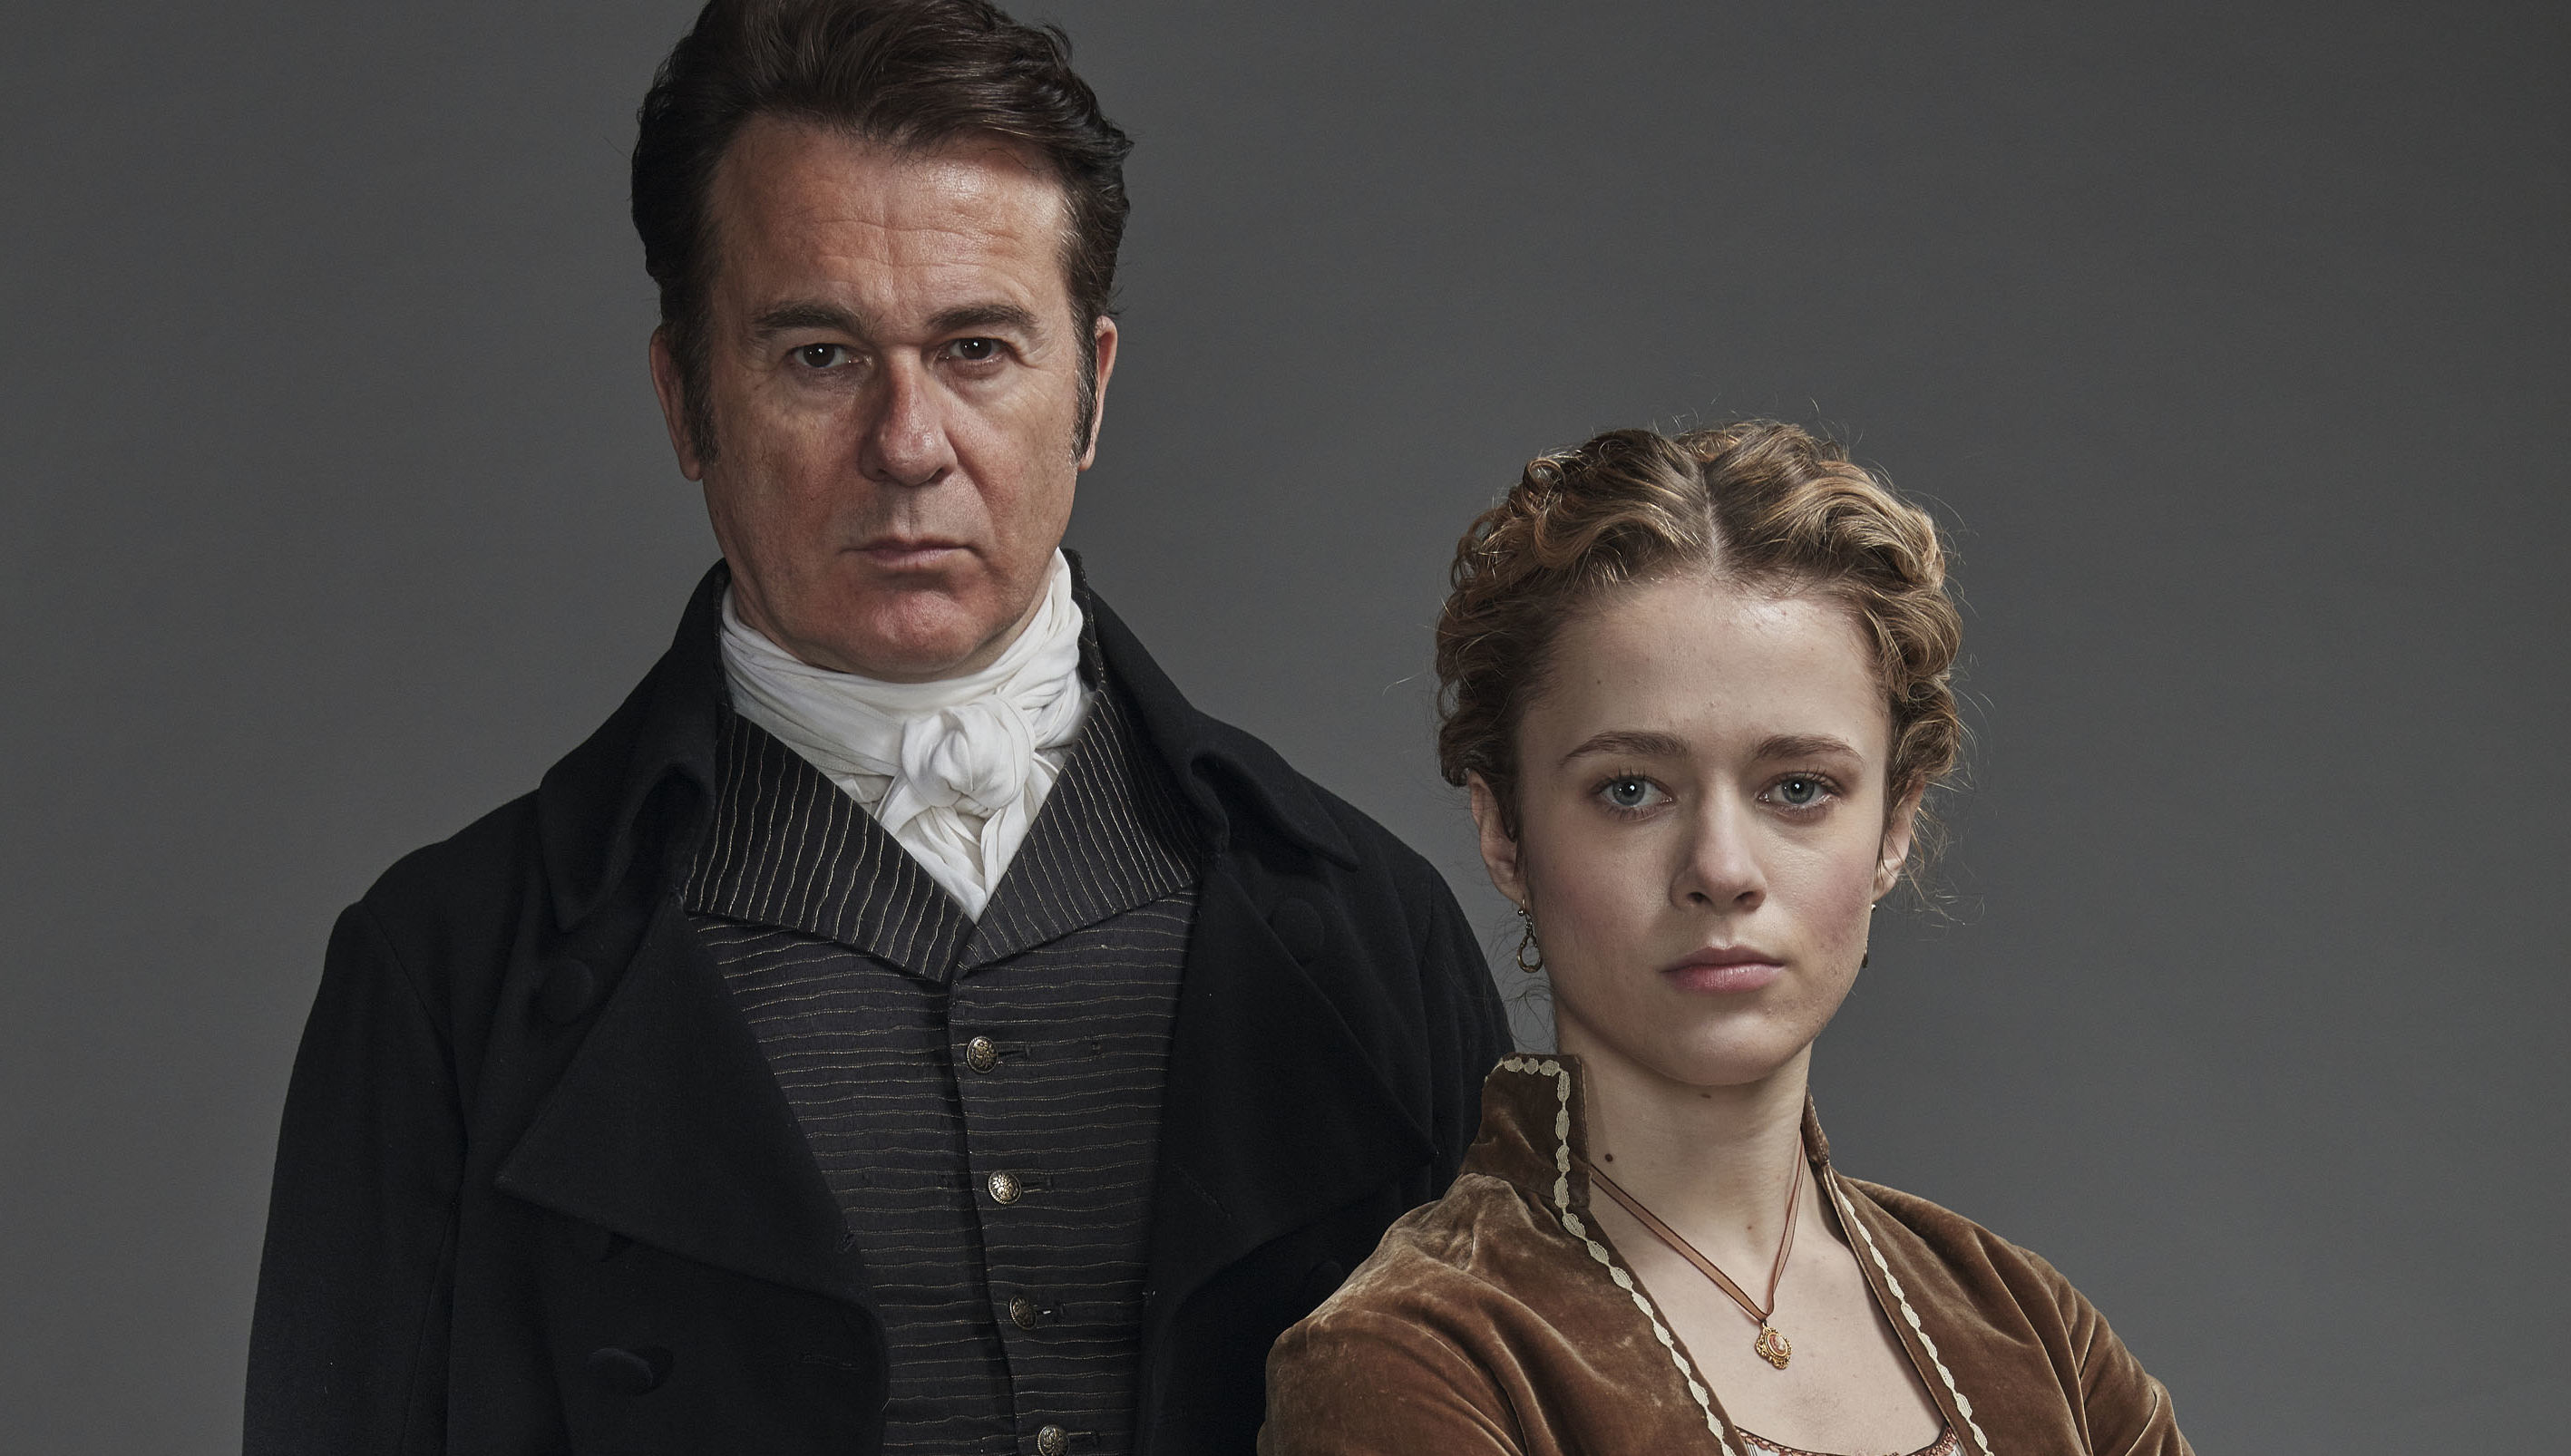 George Hanson and Cecily Hanson in Poldark Season 5.